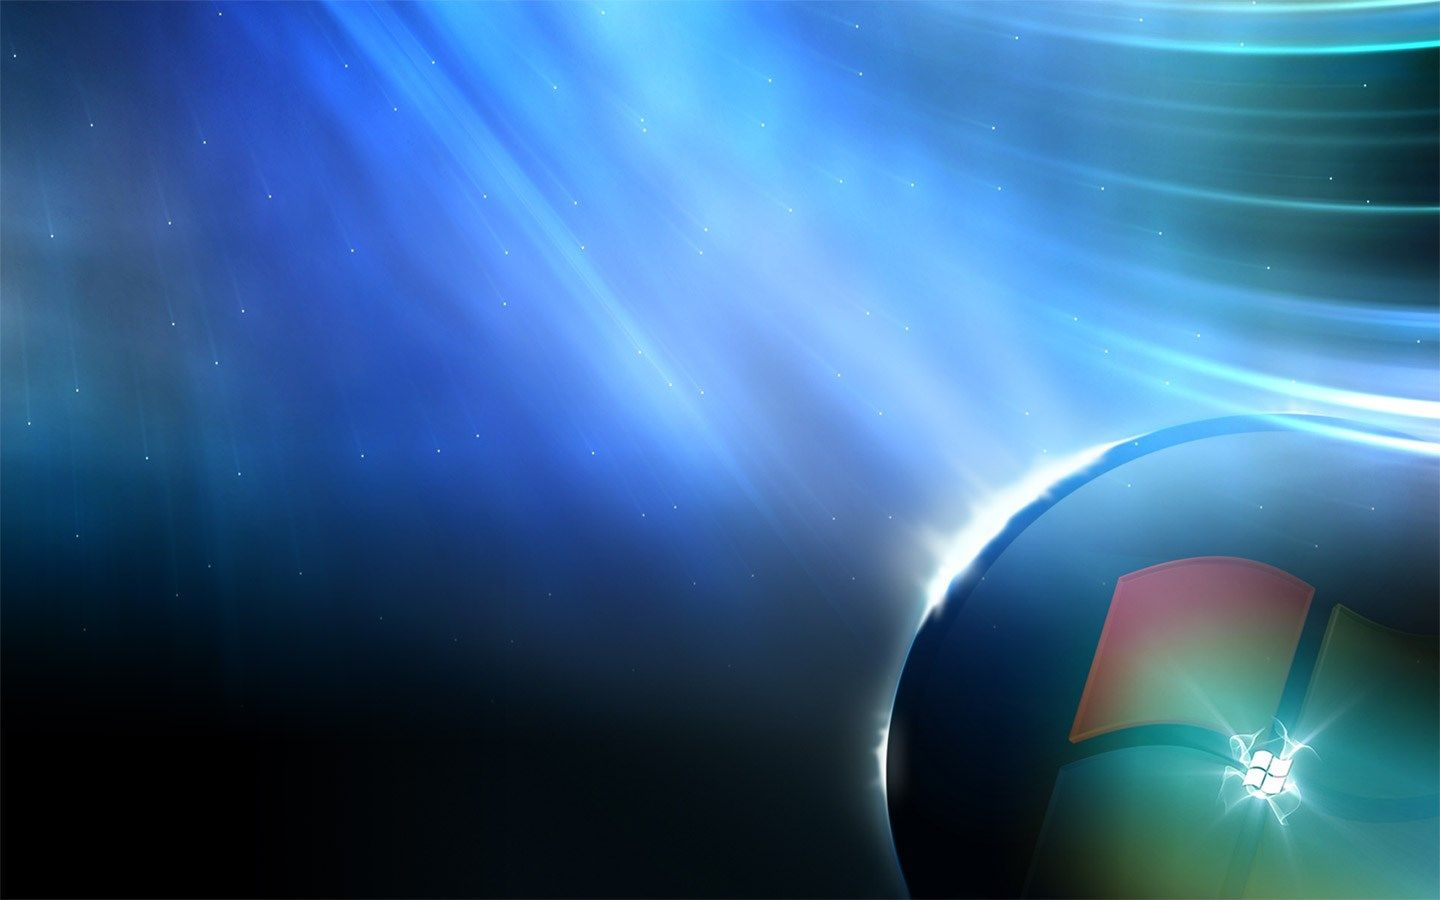 windows 7 hd hueputalo Cool desktop backgrounds, Cool